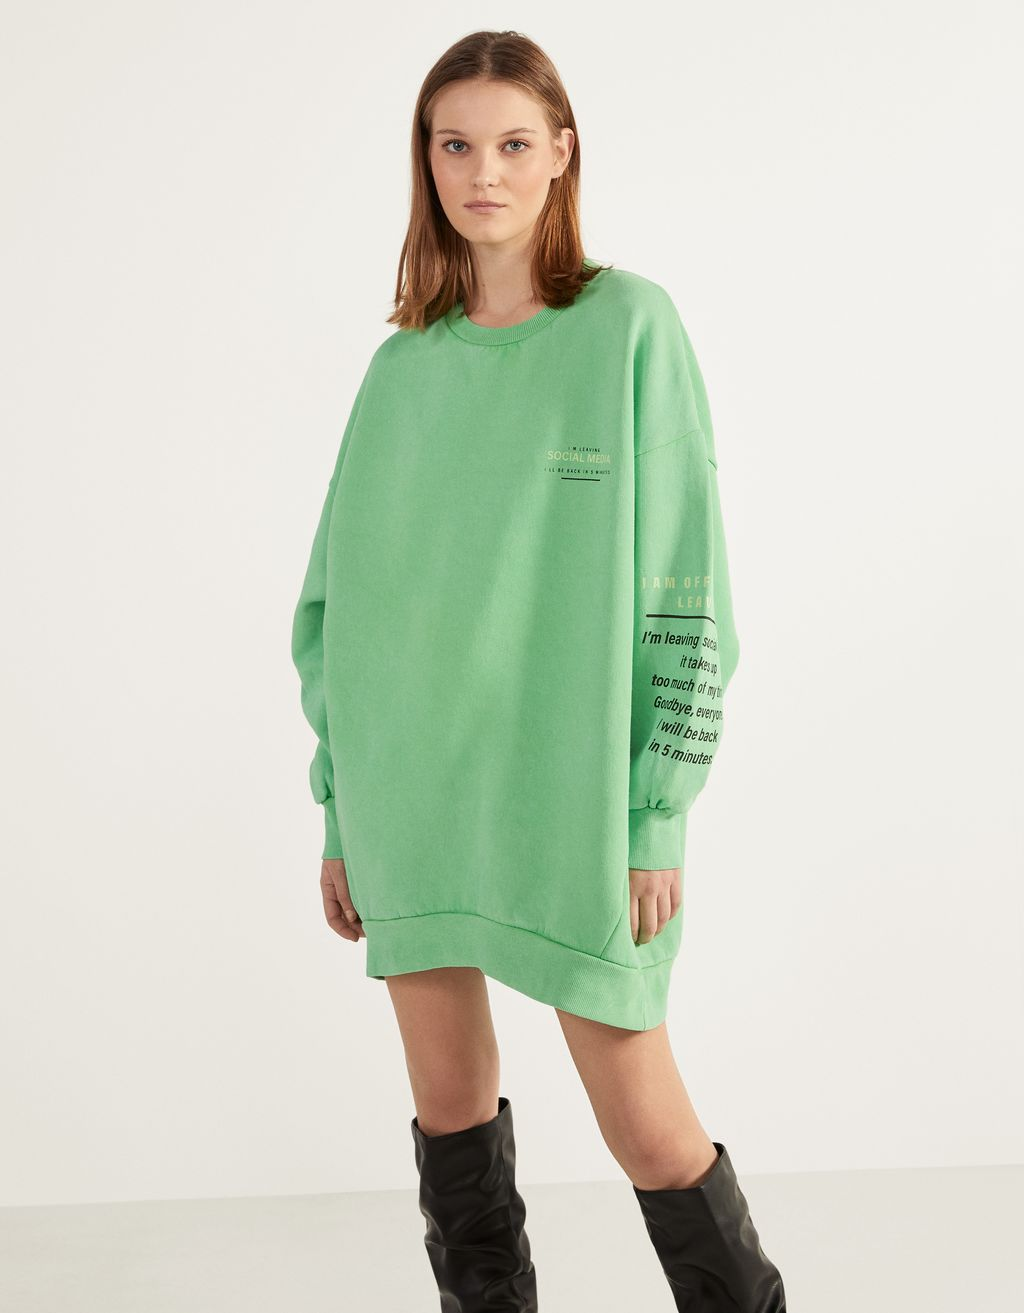 Faded-effect sweatshirt with print